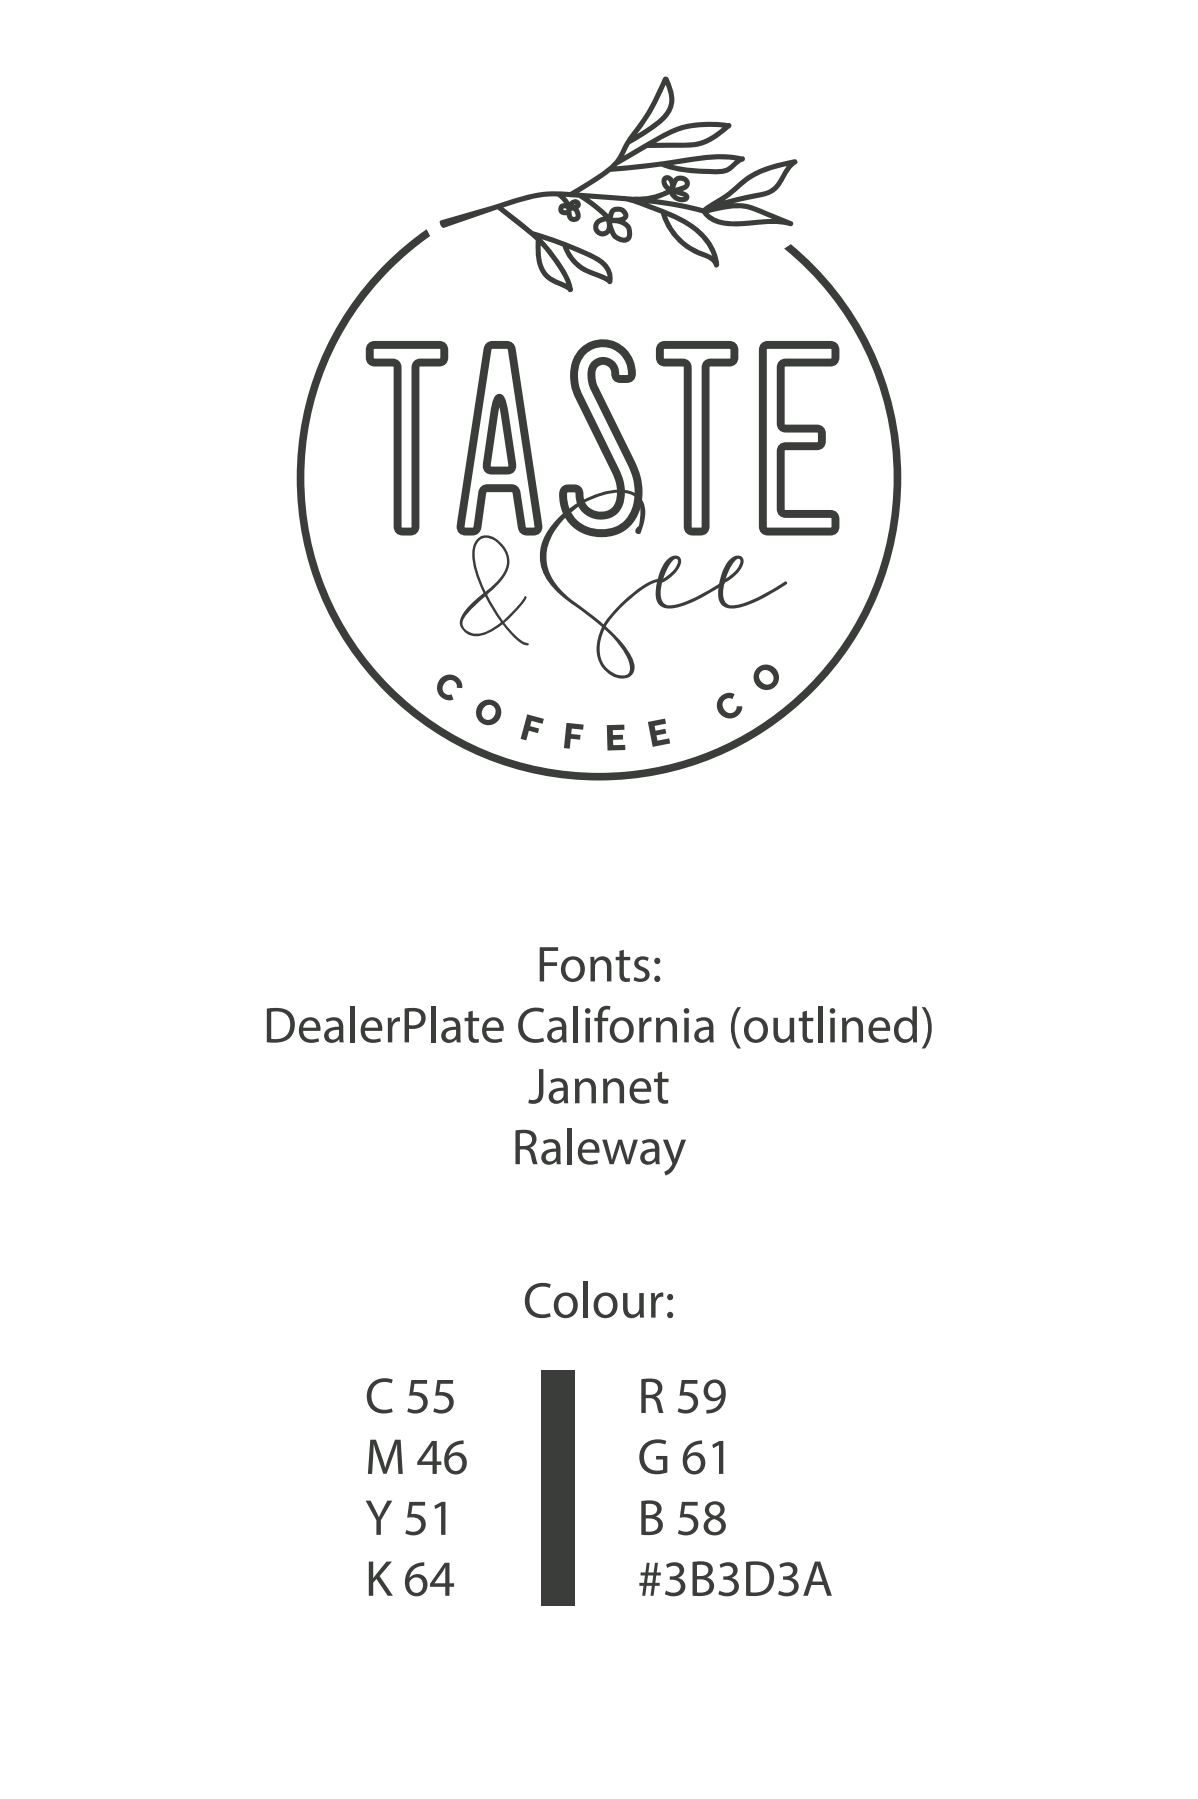 Taste and See Coffee Co